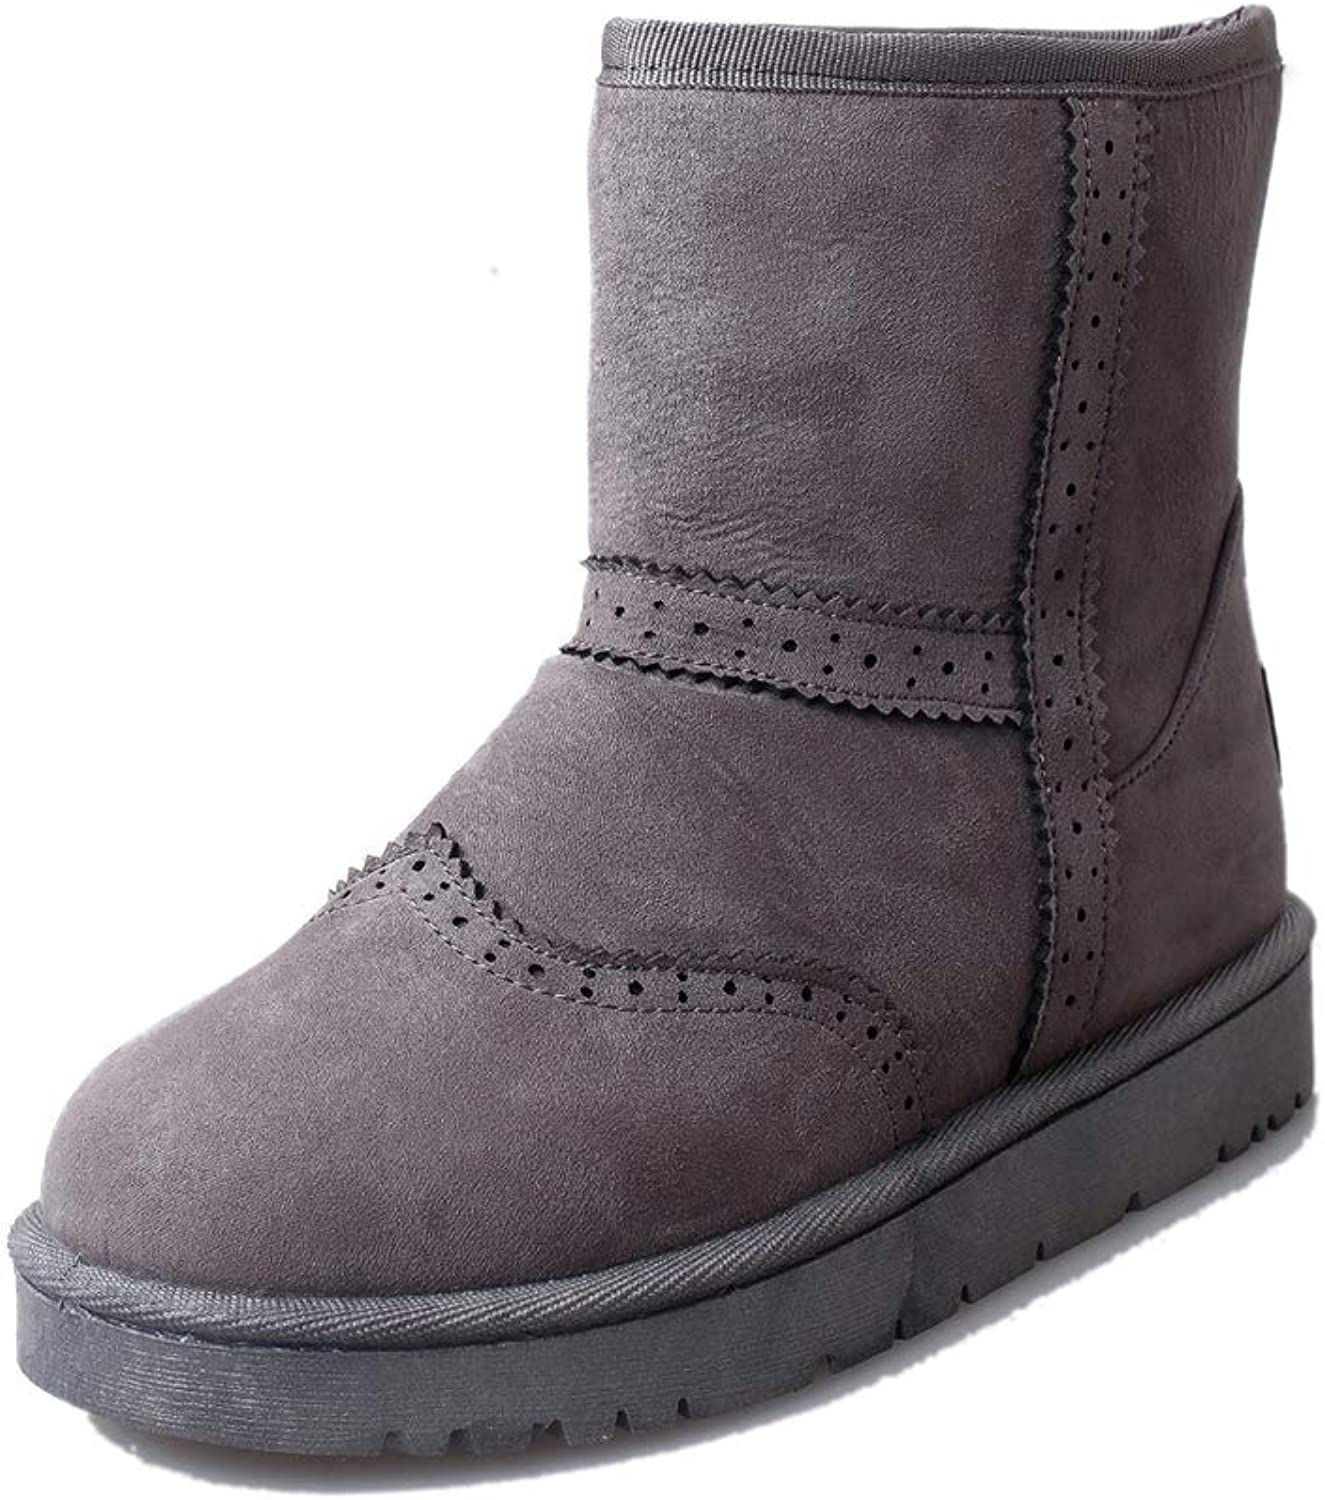 Quality.A Women's Round Toe Ankle Boots Fashion Boots Ankle Boots